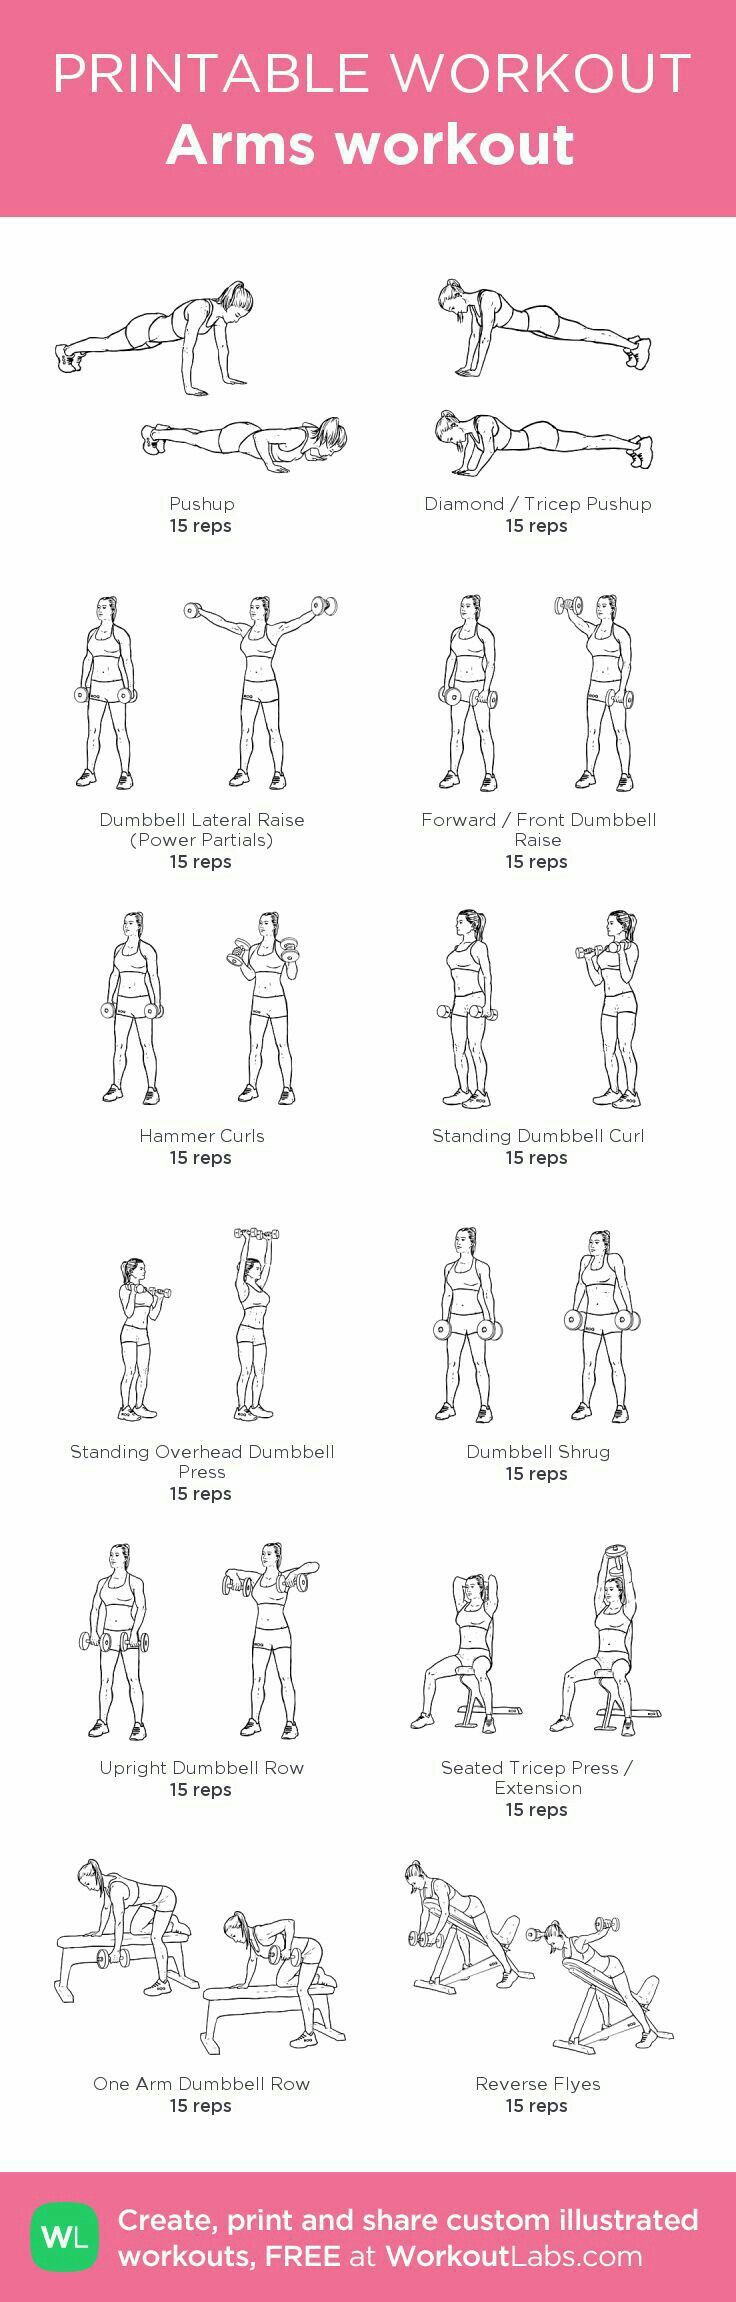 Find This Pin And More On Workout Ideas By Desreg